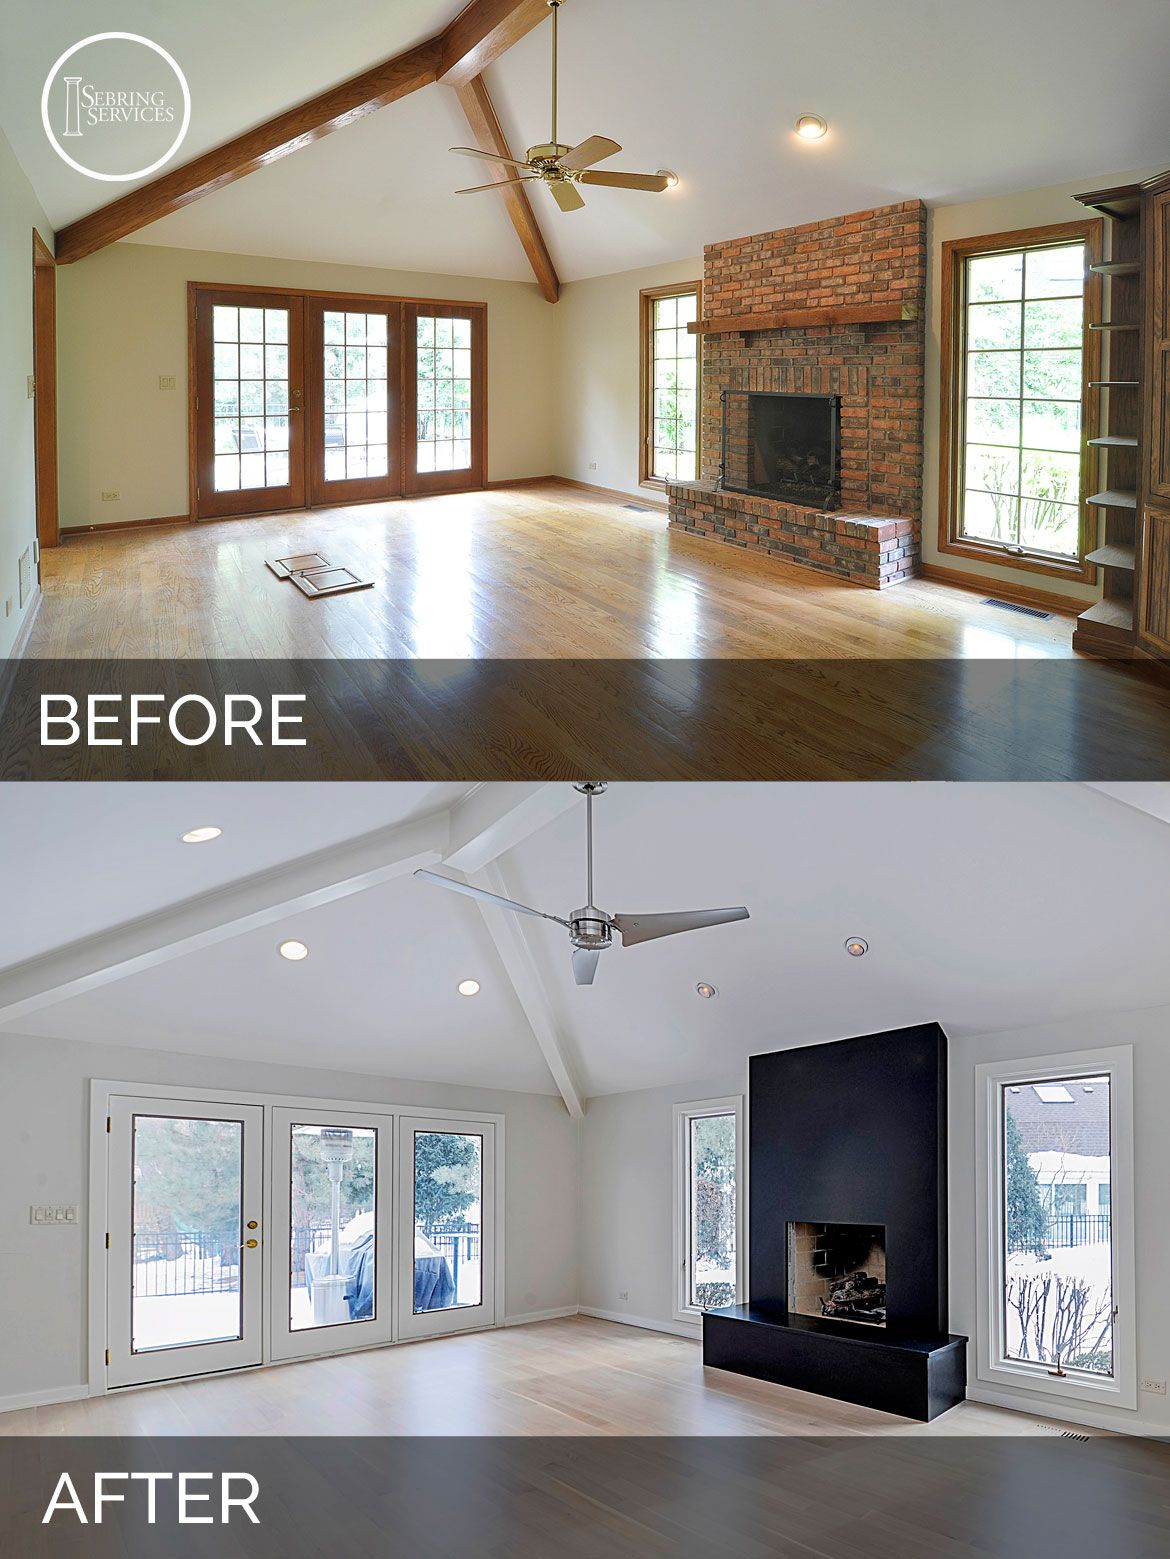 Jeff betsy 39 s kitchen before after pictures home - Living room renovation before and after ...